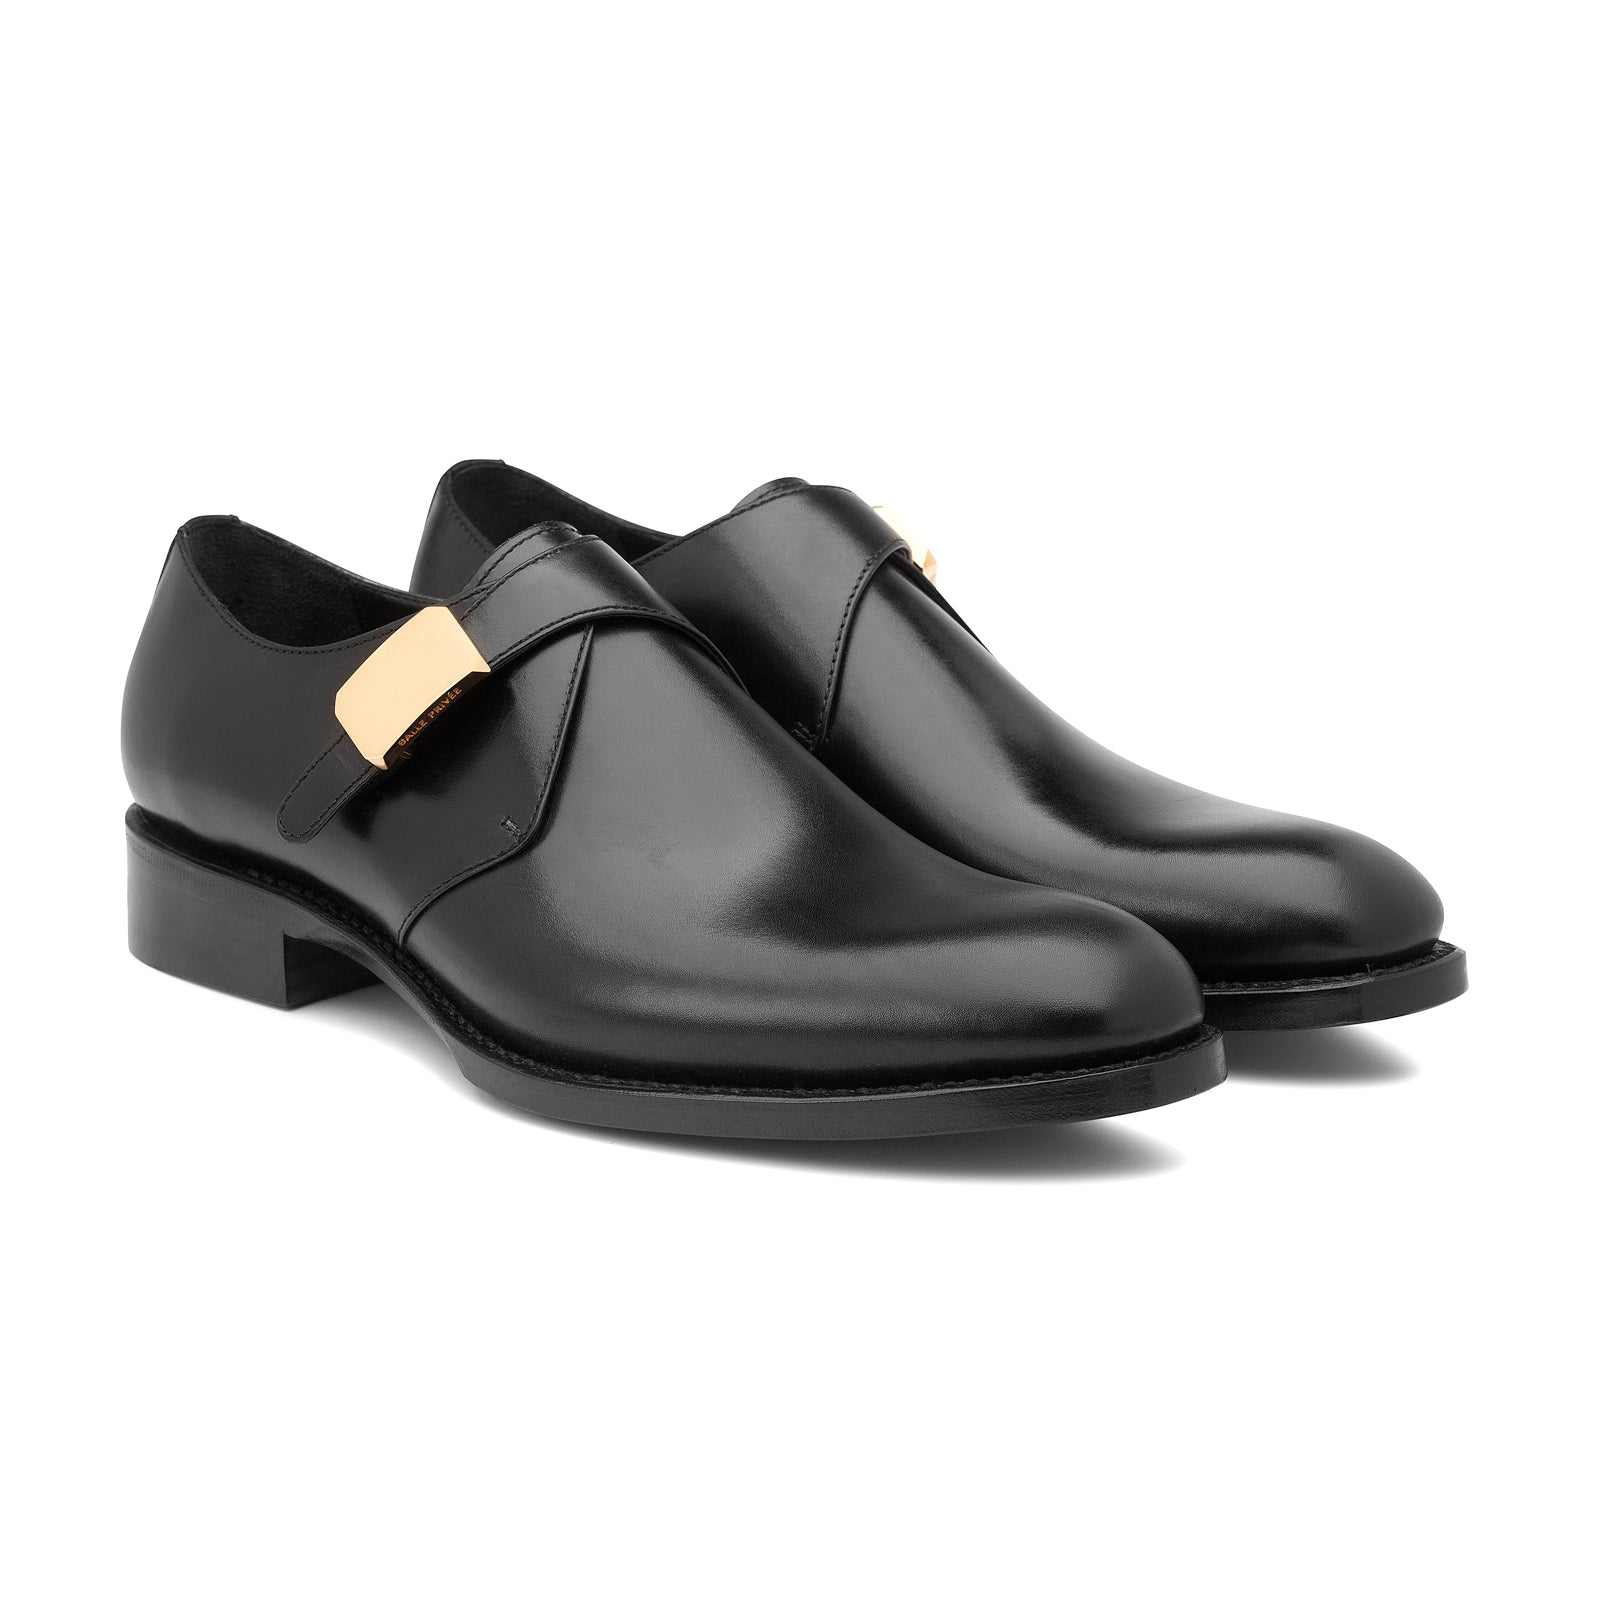 PARKER Monk shoes